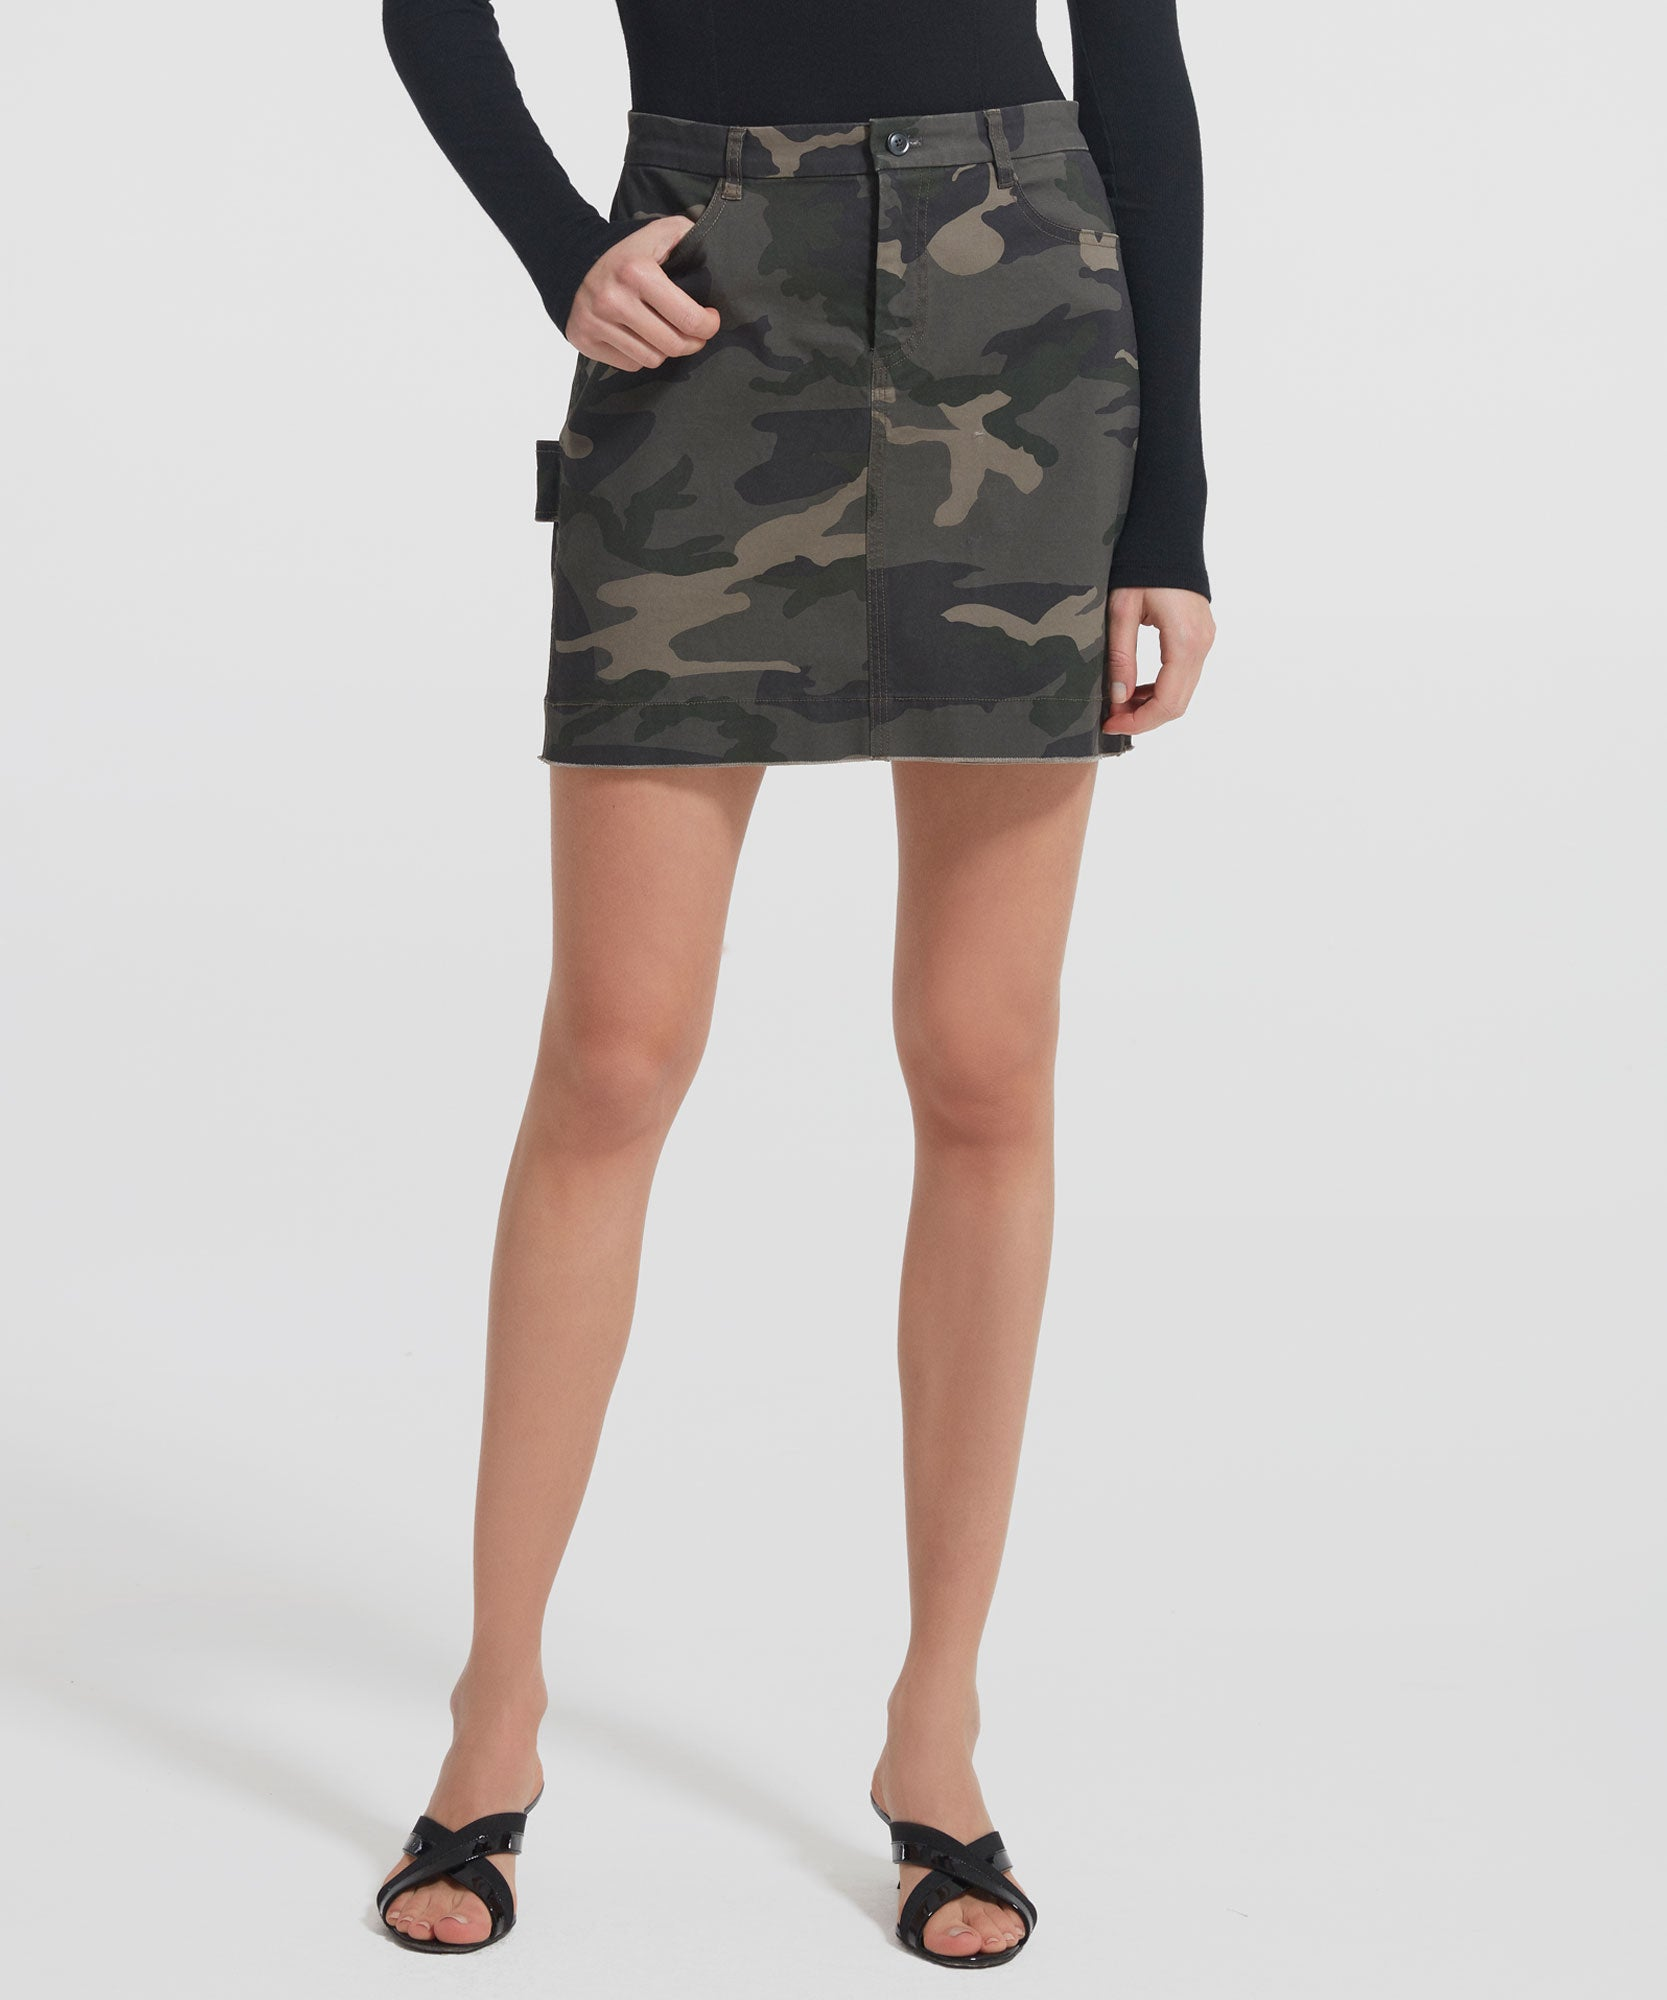 Jungle Camo Stretch Cotton Mini Skirt - Women's Cotton Mini Skirt by ATM Anthony Thomas Melillo